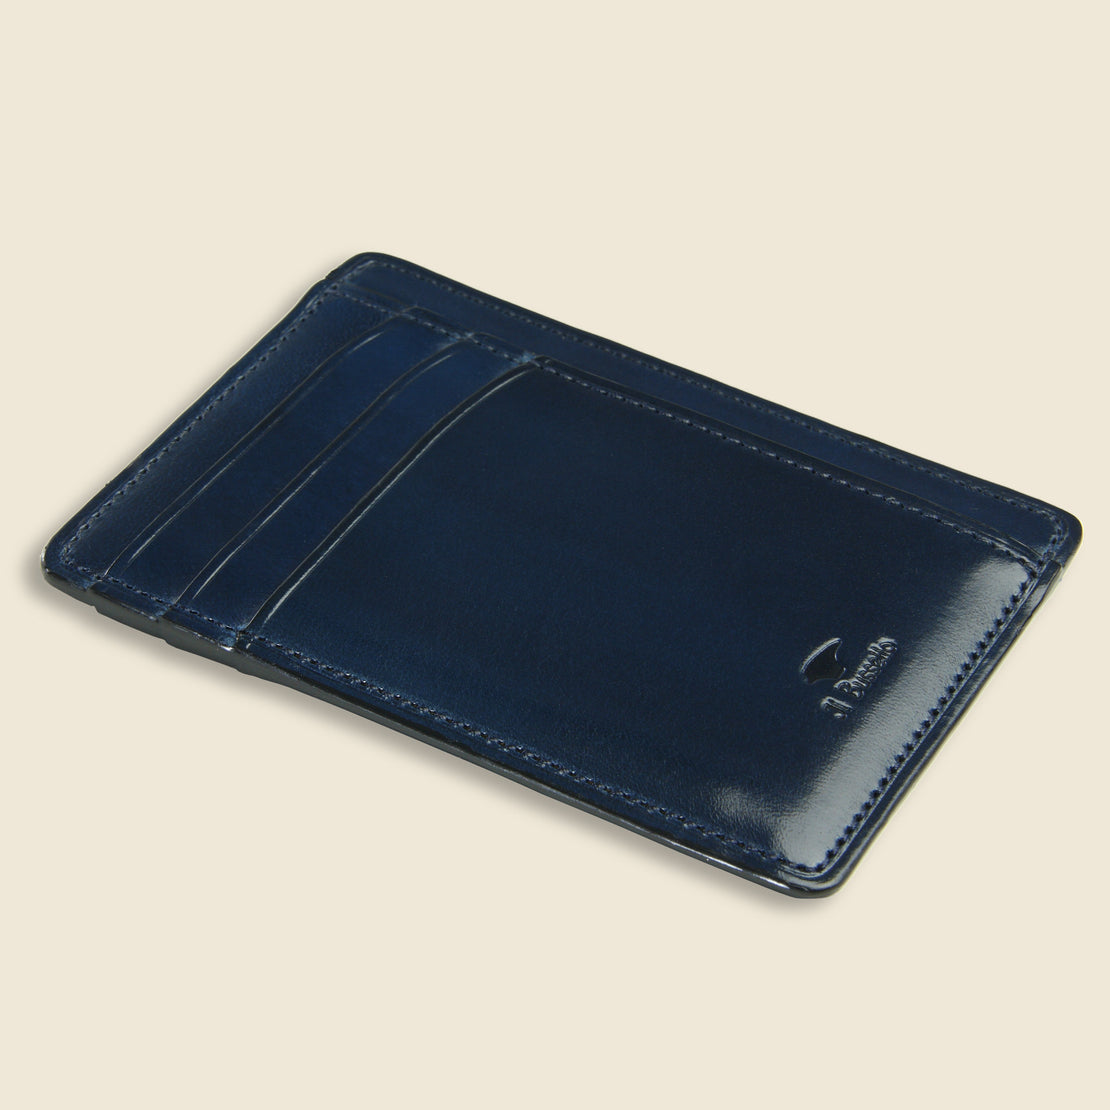 Card and Document Case - Navy - Il Bussetto - STAG Provisions - Accessories - Wallets